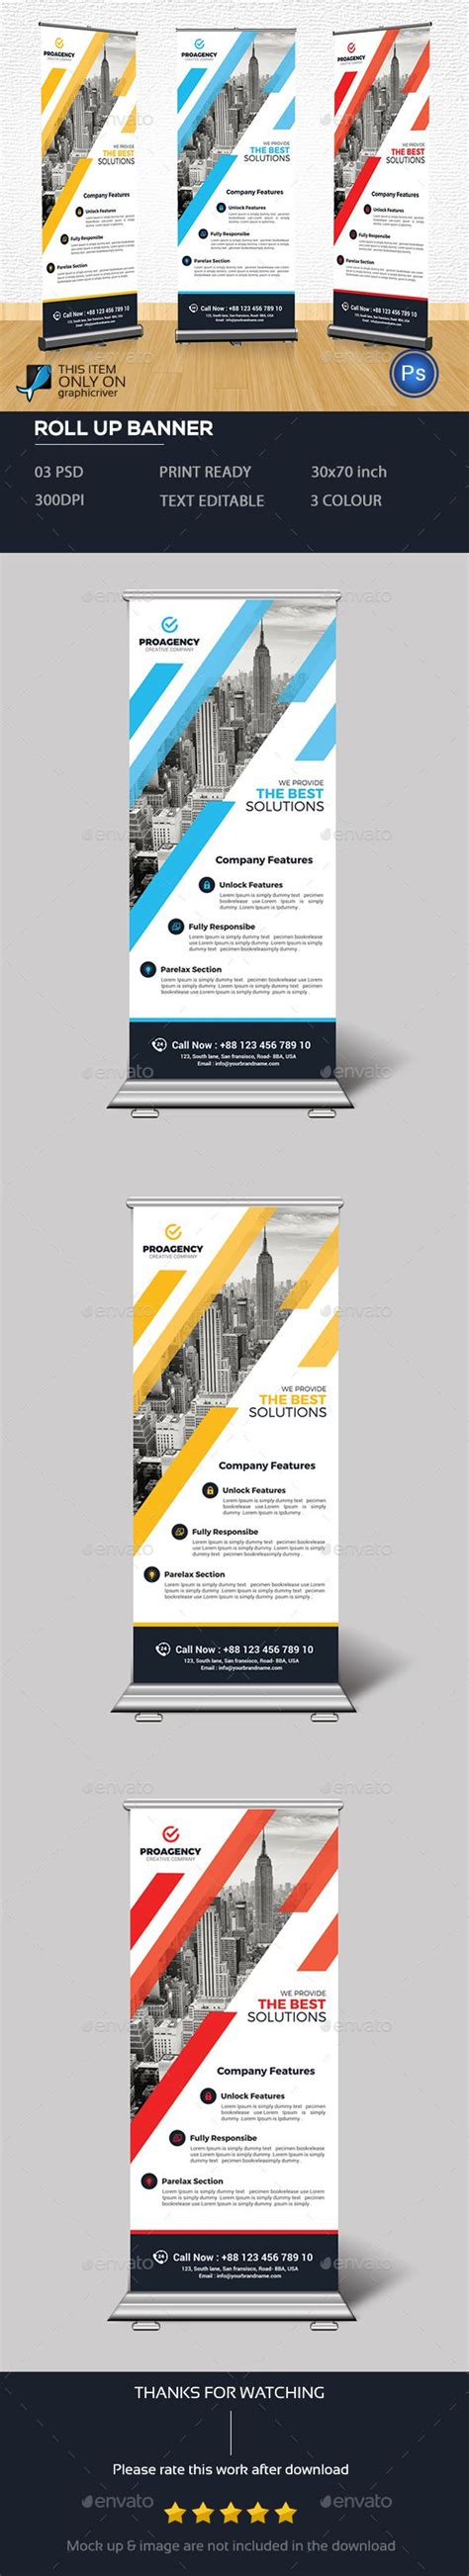 templates for roller banners best 25 roller banners ideas on pinterest